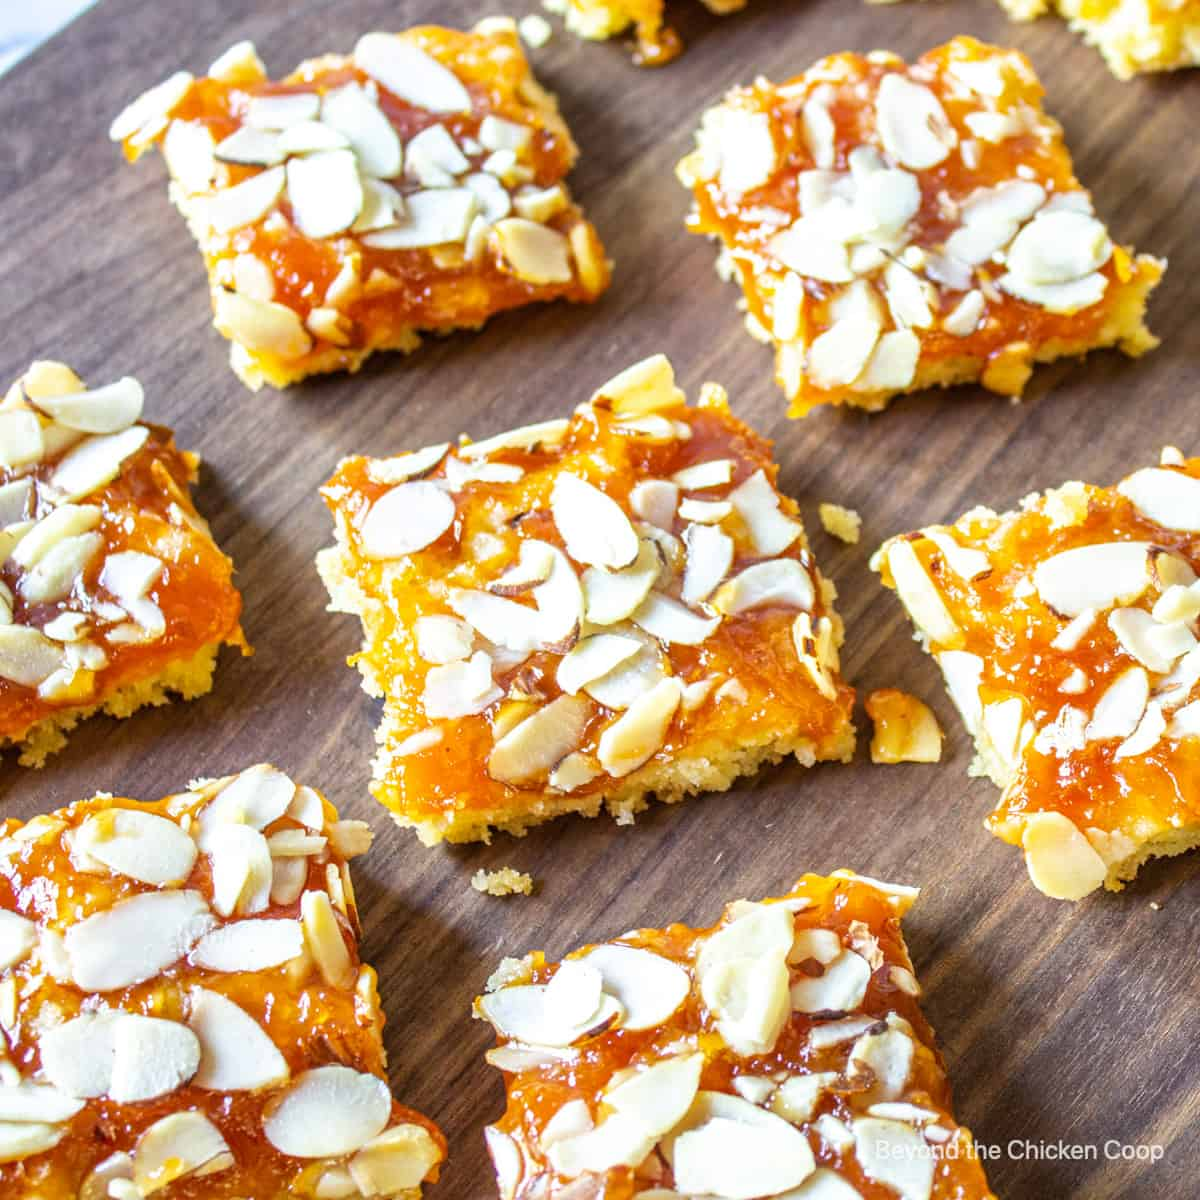 Apricot bars topped with slice almonds on a wooden board.